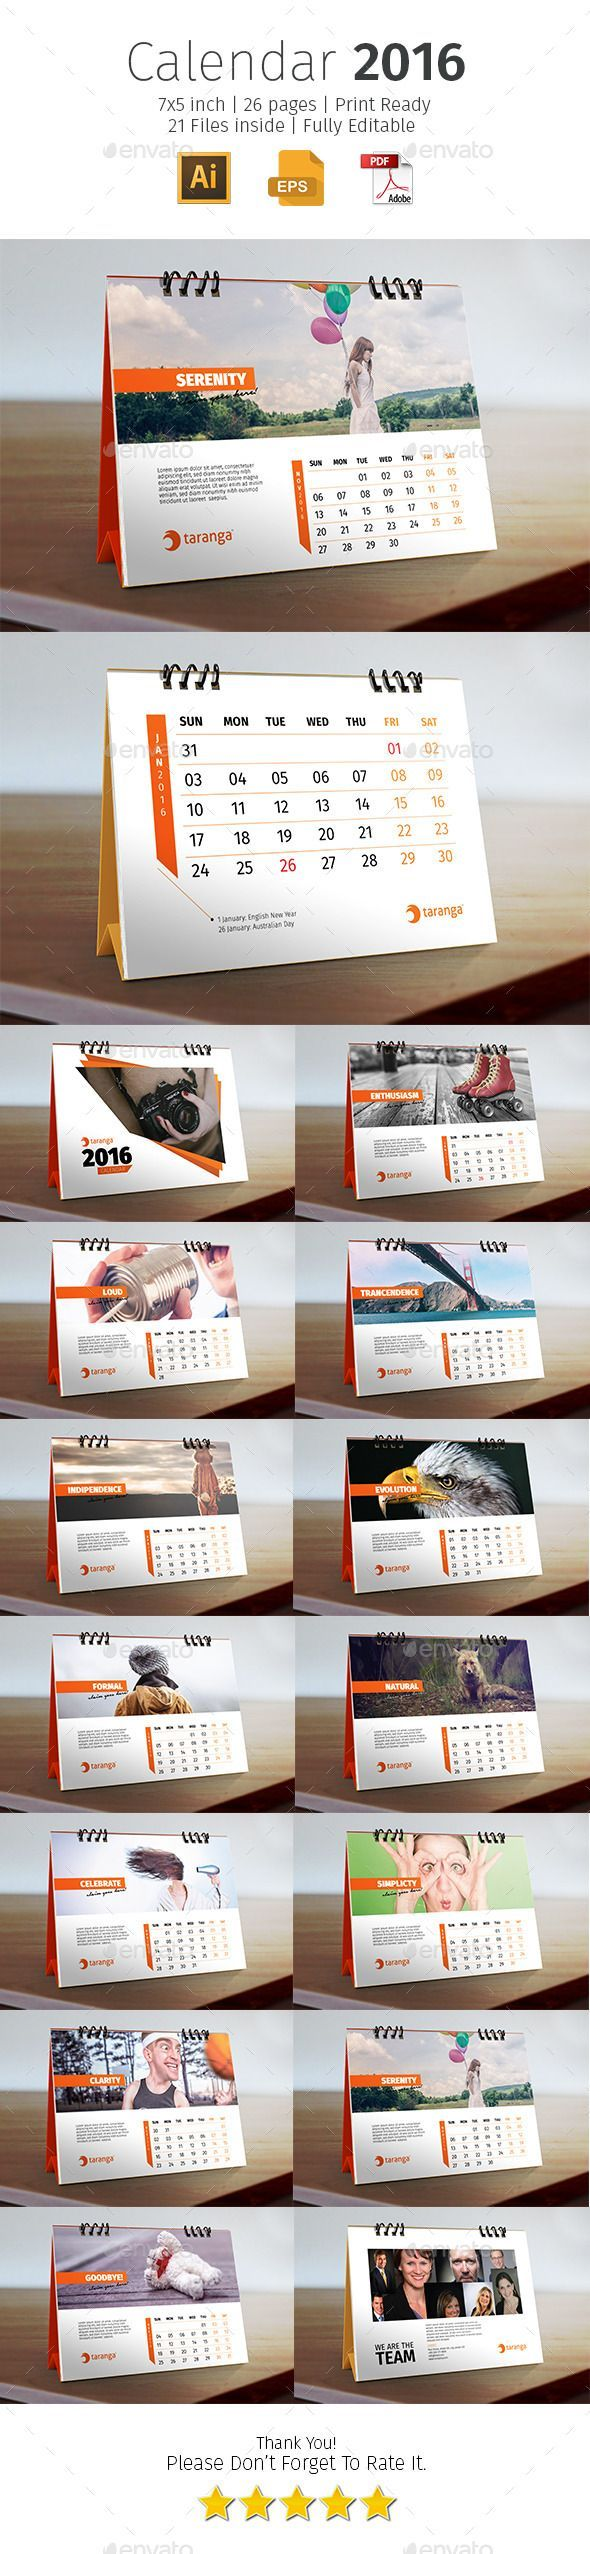 Corporate Calendar Template : Corporate desk calendar template design download